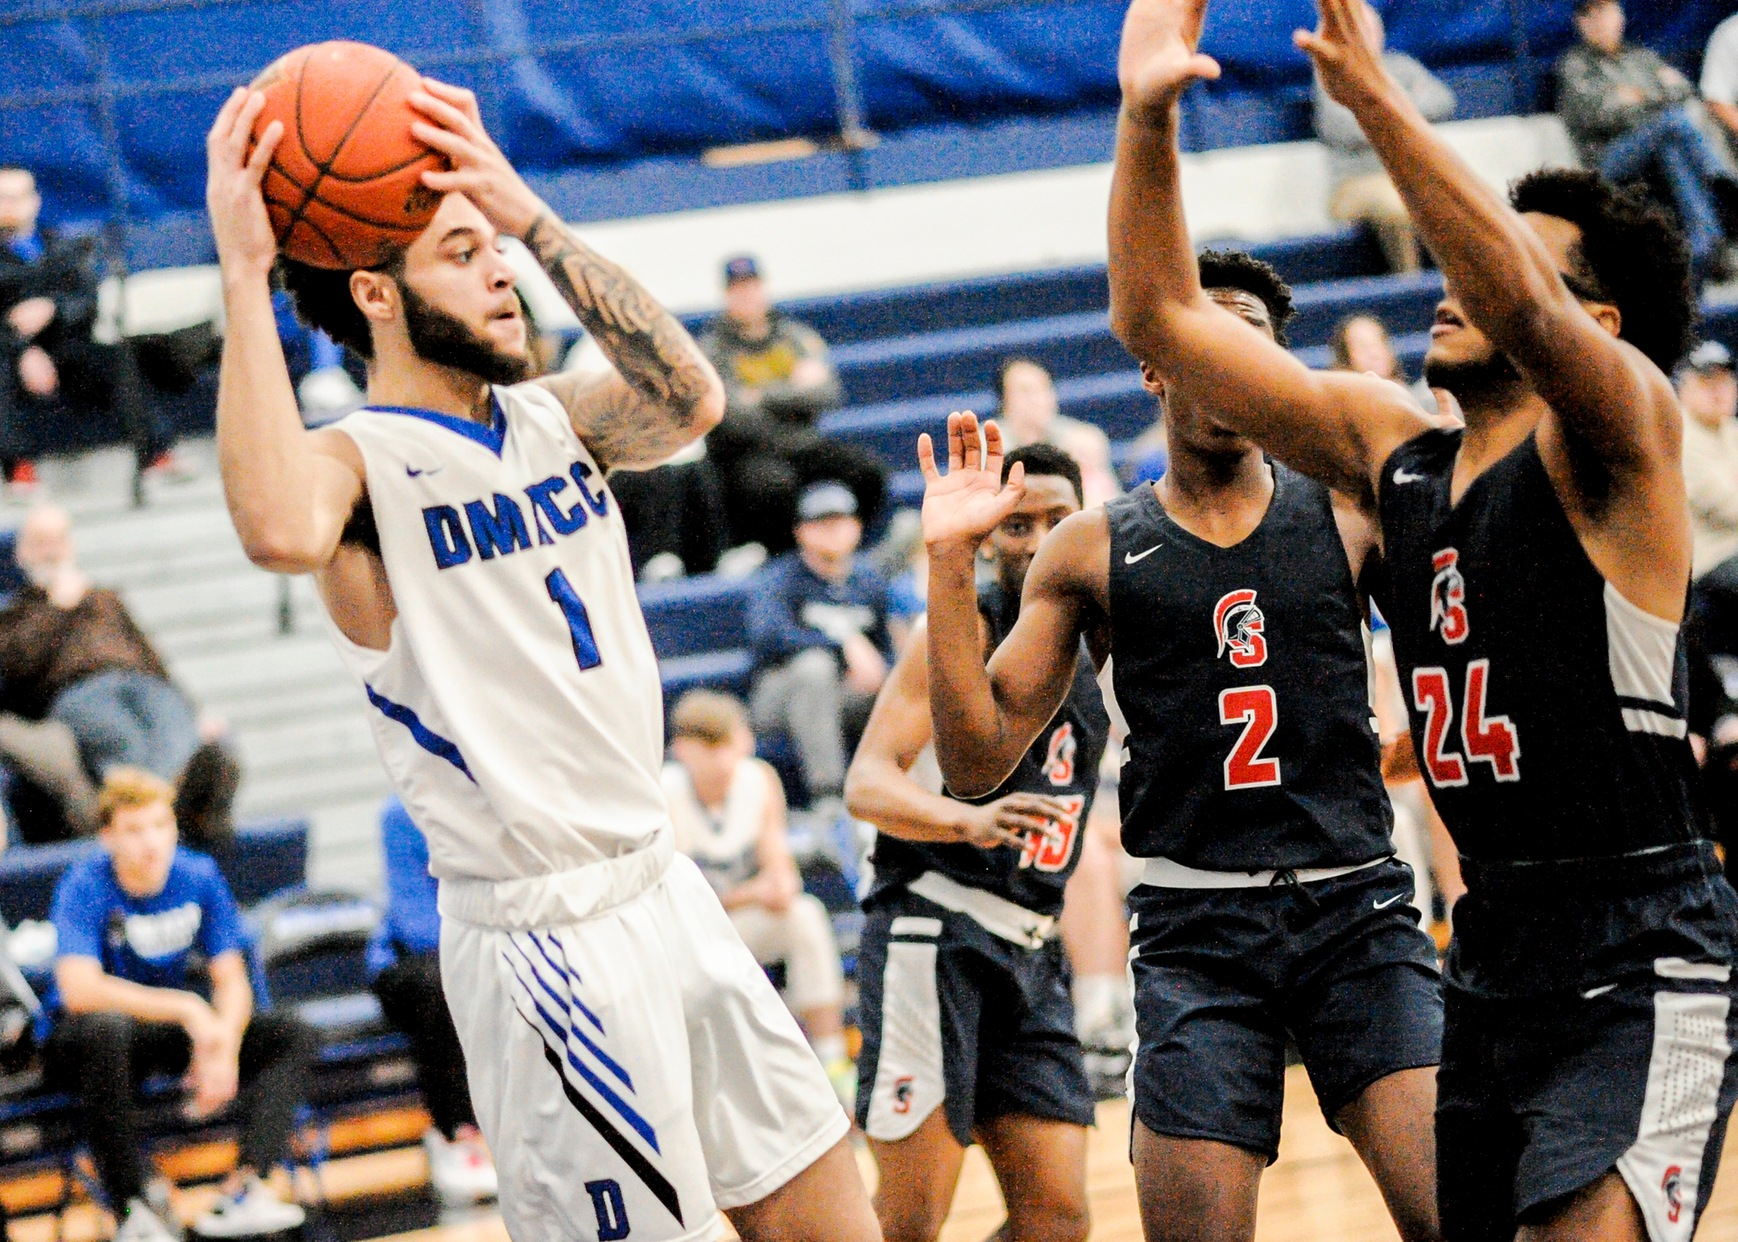 Bariffe-Smith leads DMACC men's basketball team past SWCC, 86-50